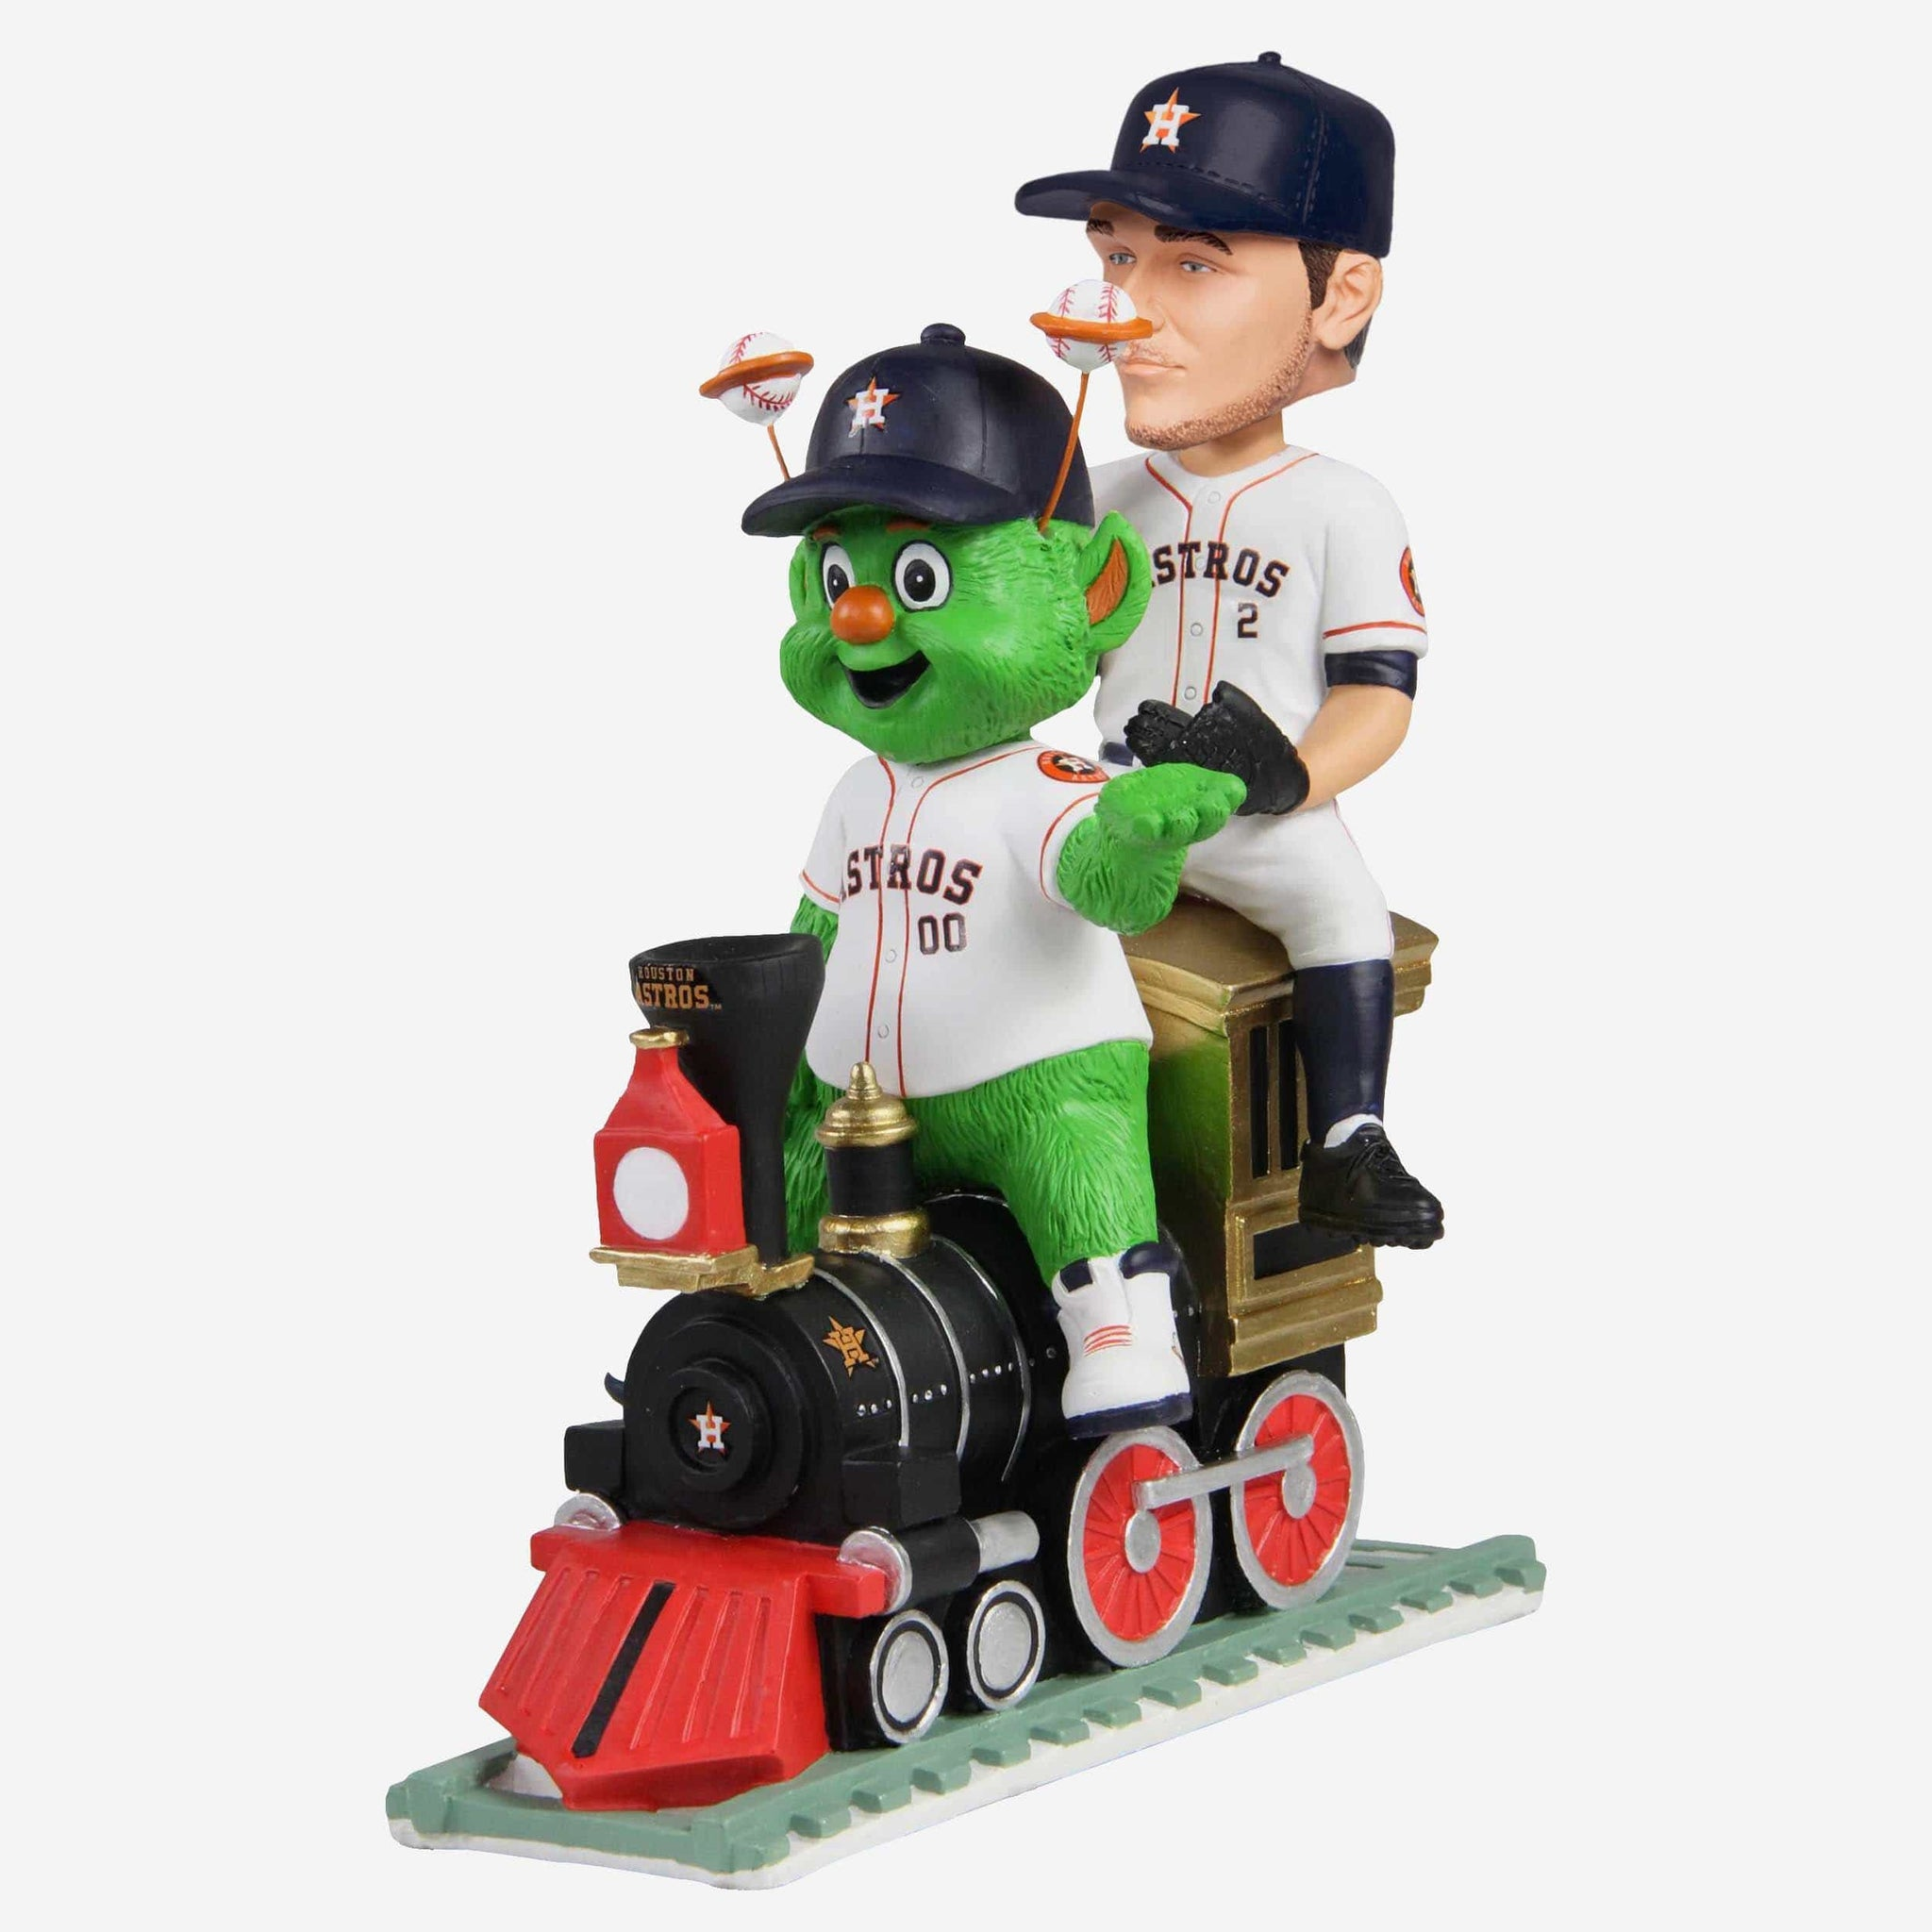 Alex Bregman & Orbit Houston Astros Dual Bobblehead FOCO - FOCO.com